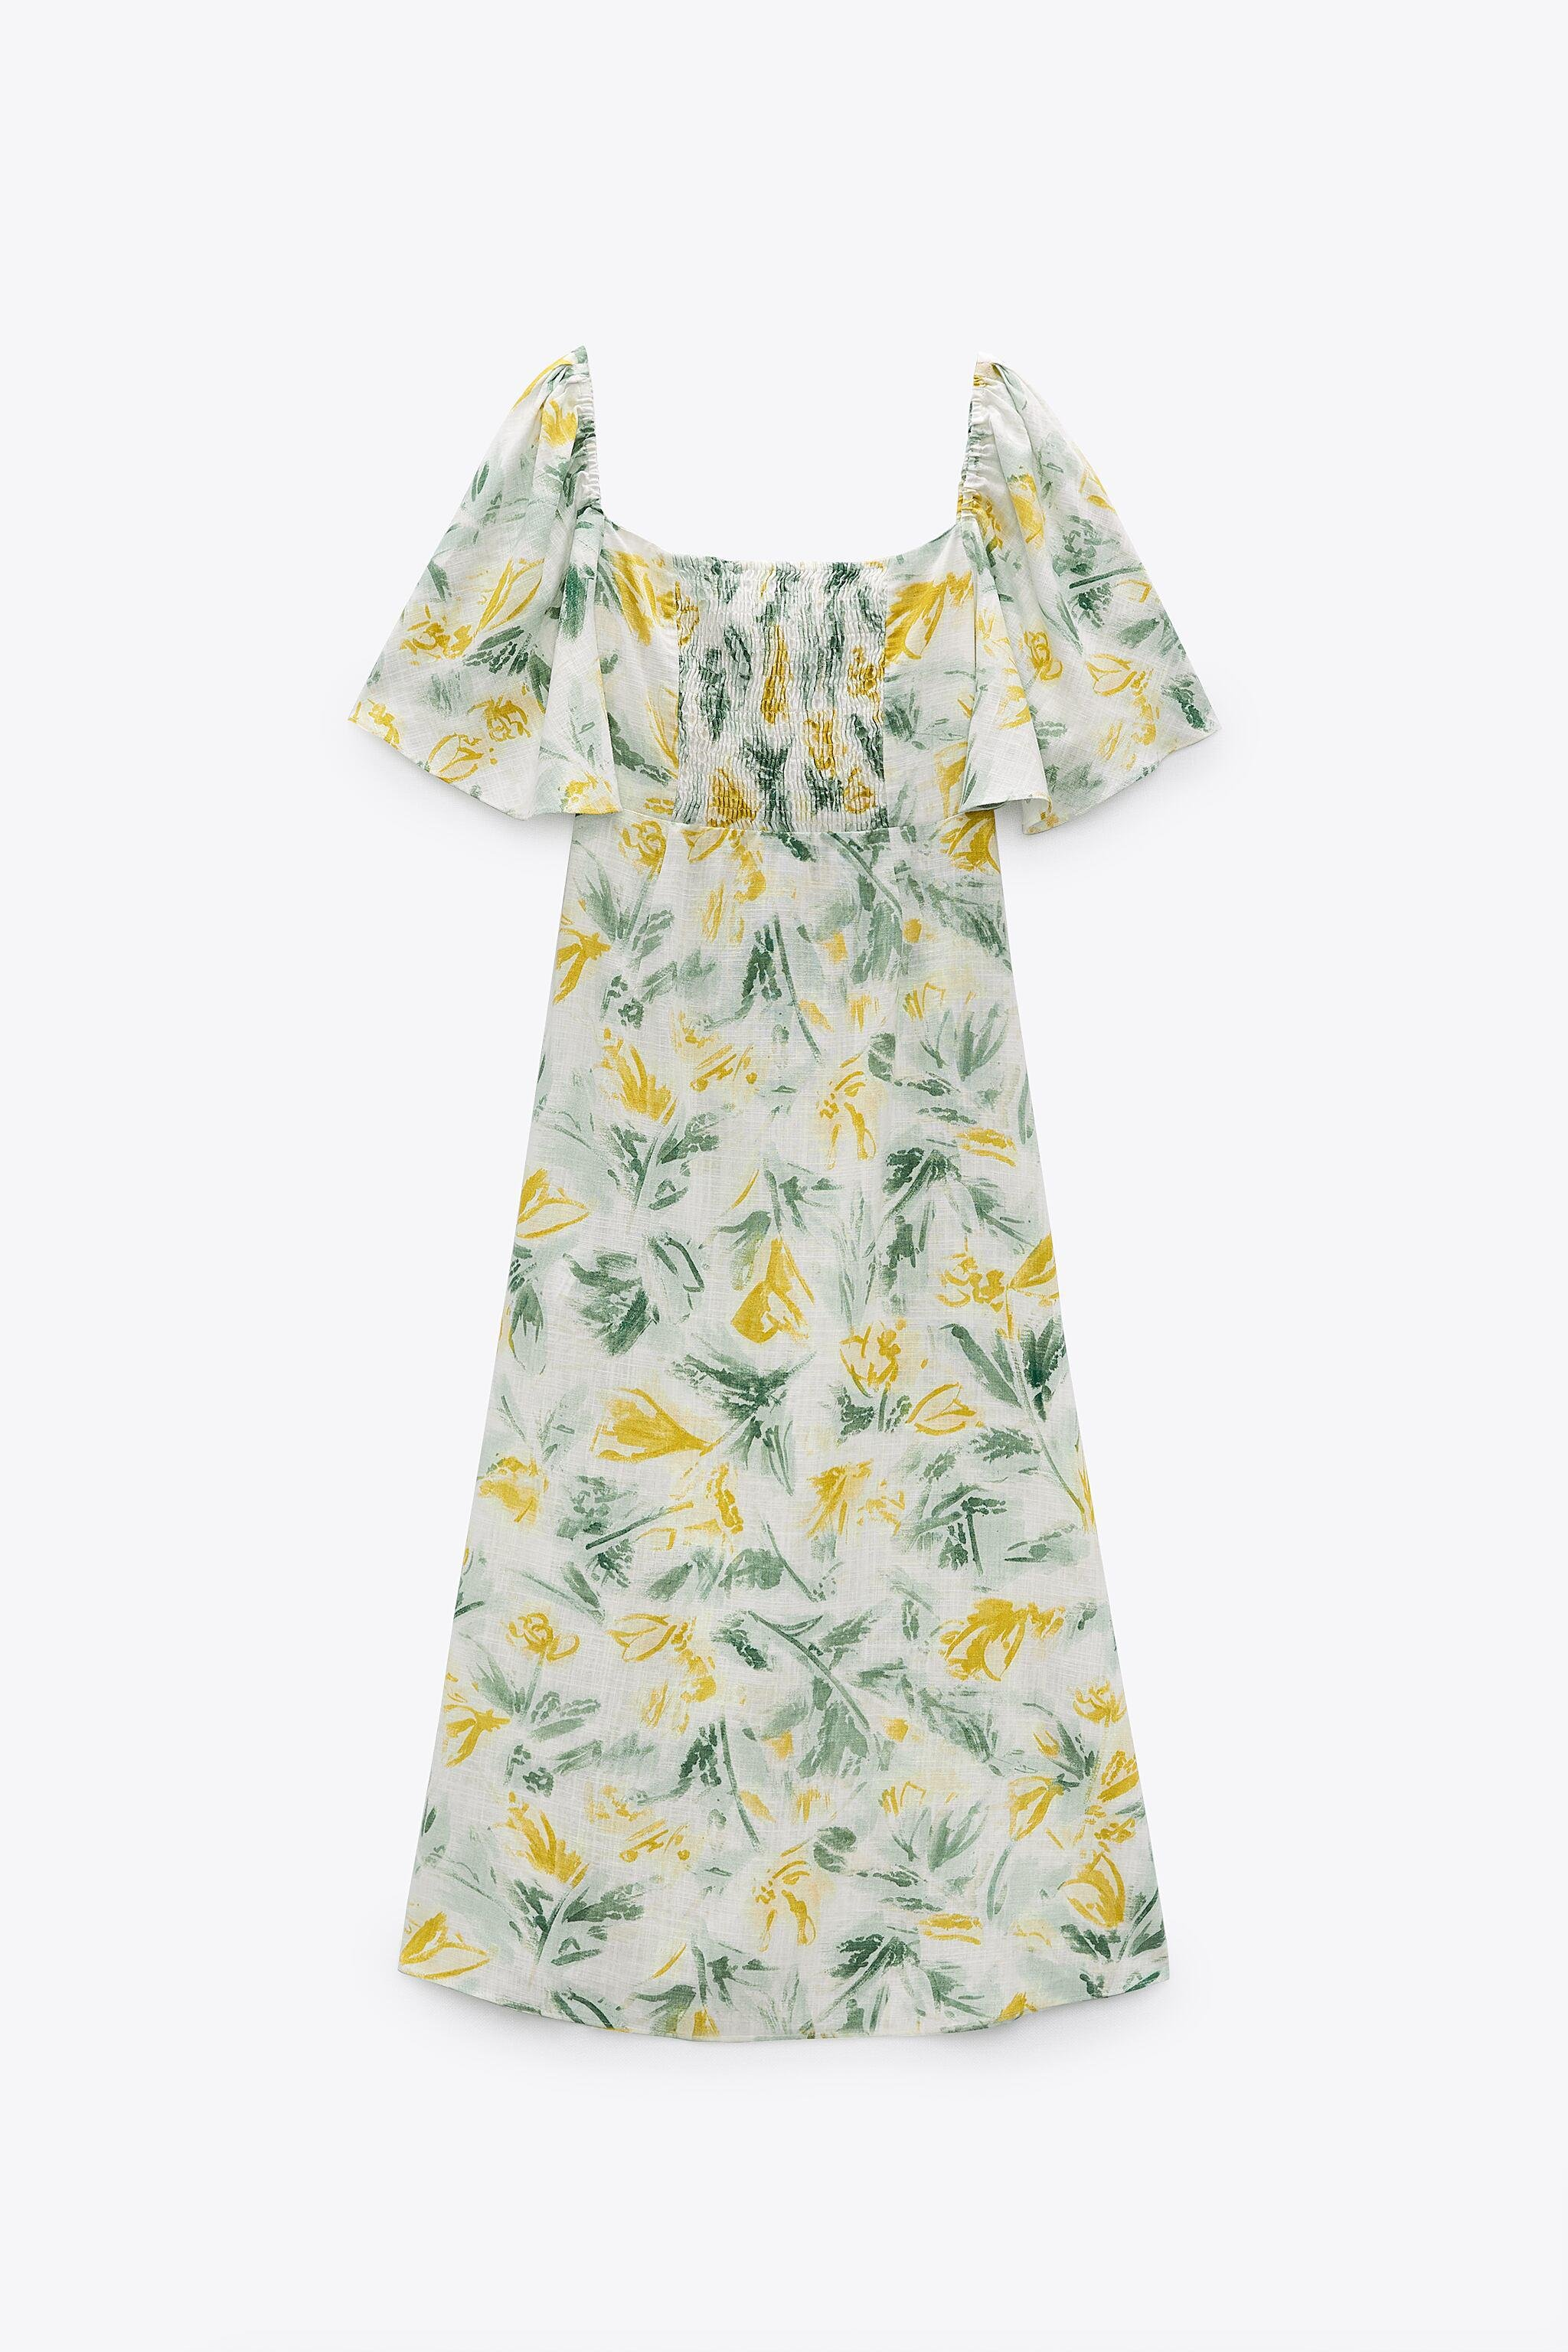 CUT OUT PRINTED DRESS 7